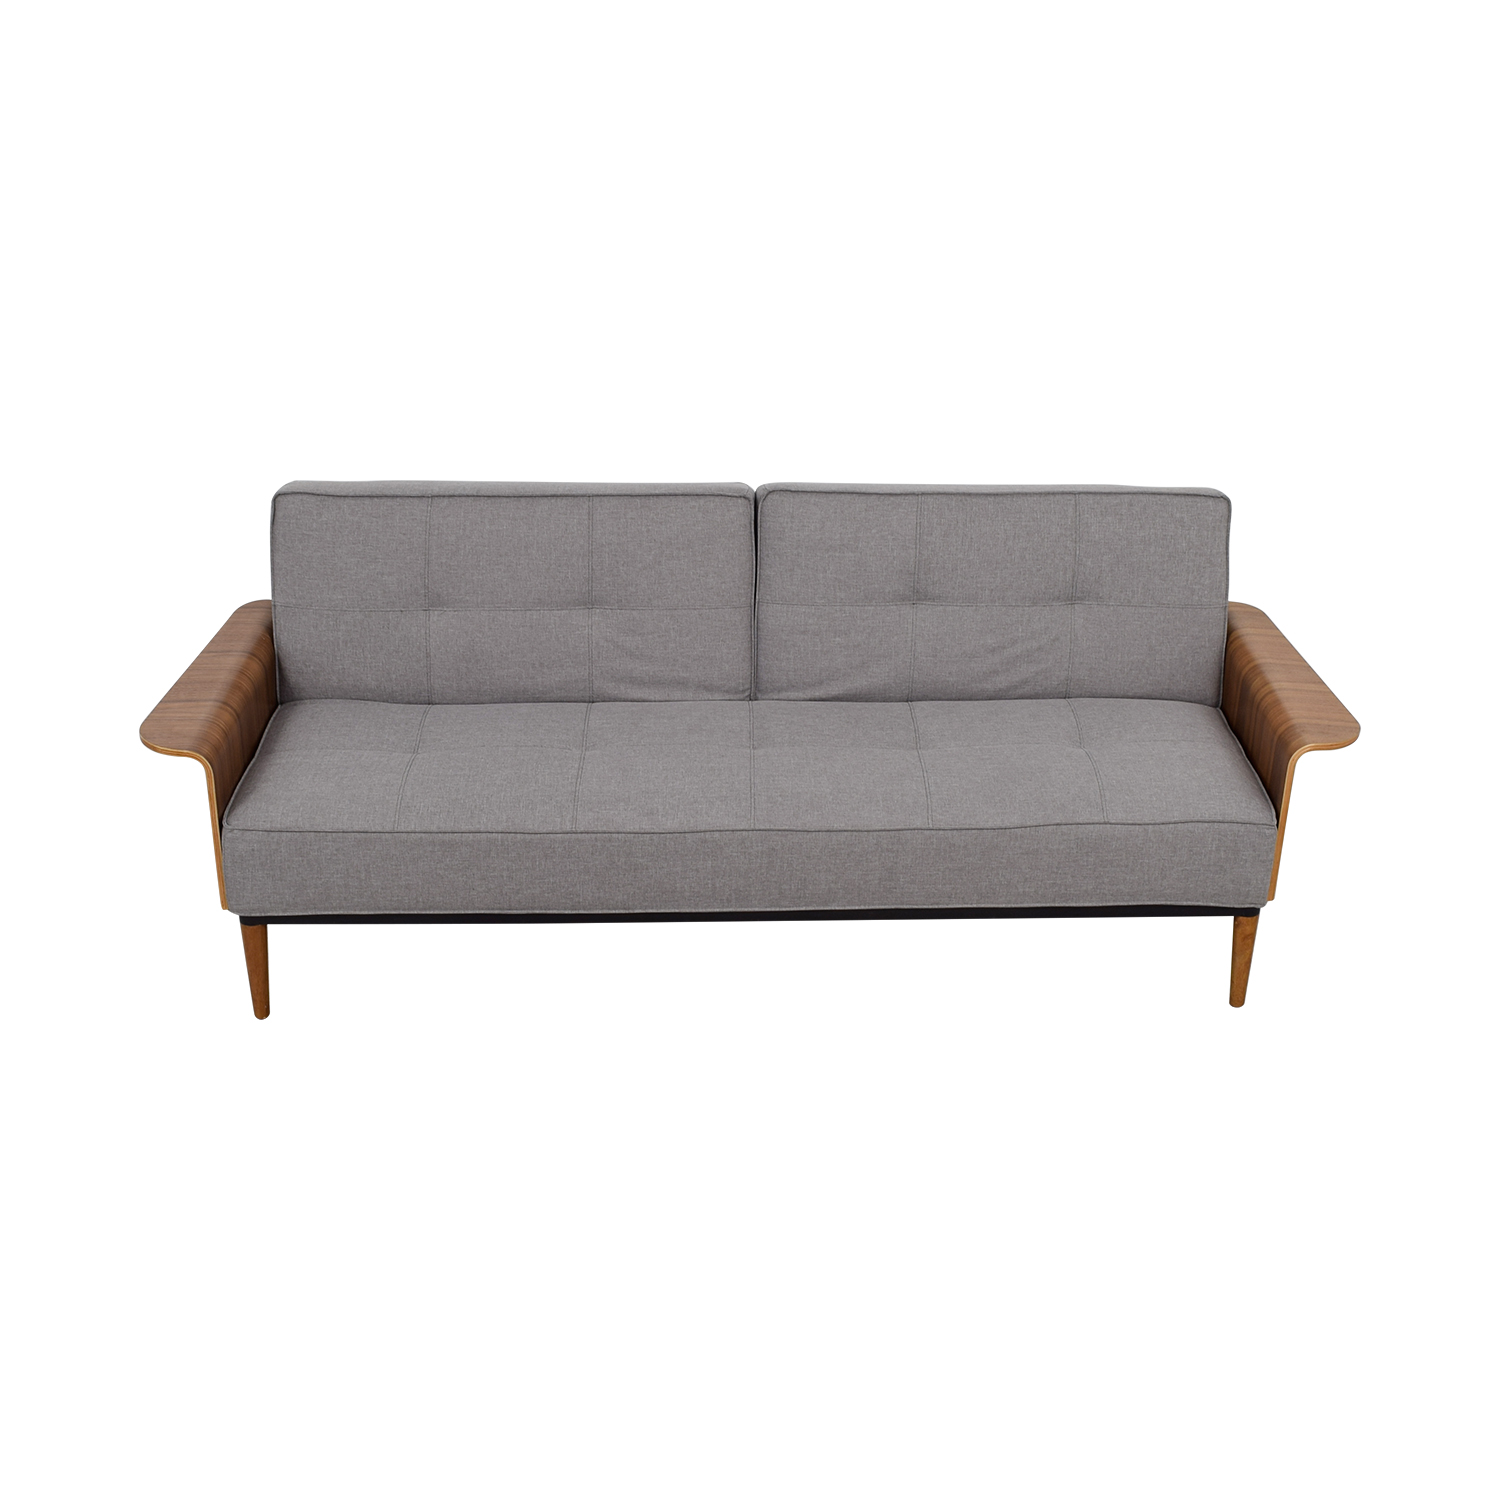 sleeper sofas for small areas buy cheap online sofas: used sale